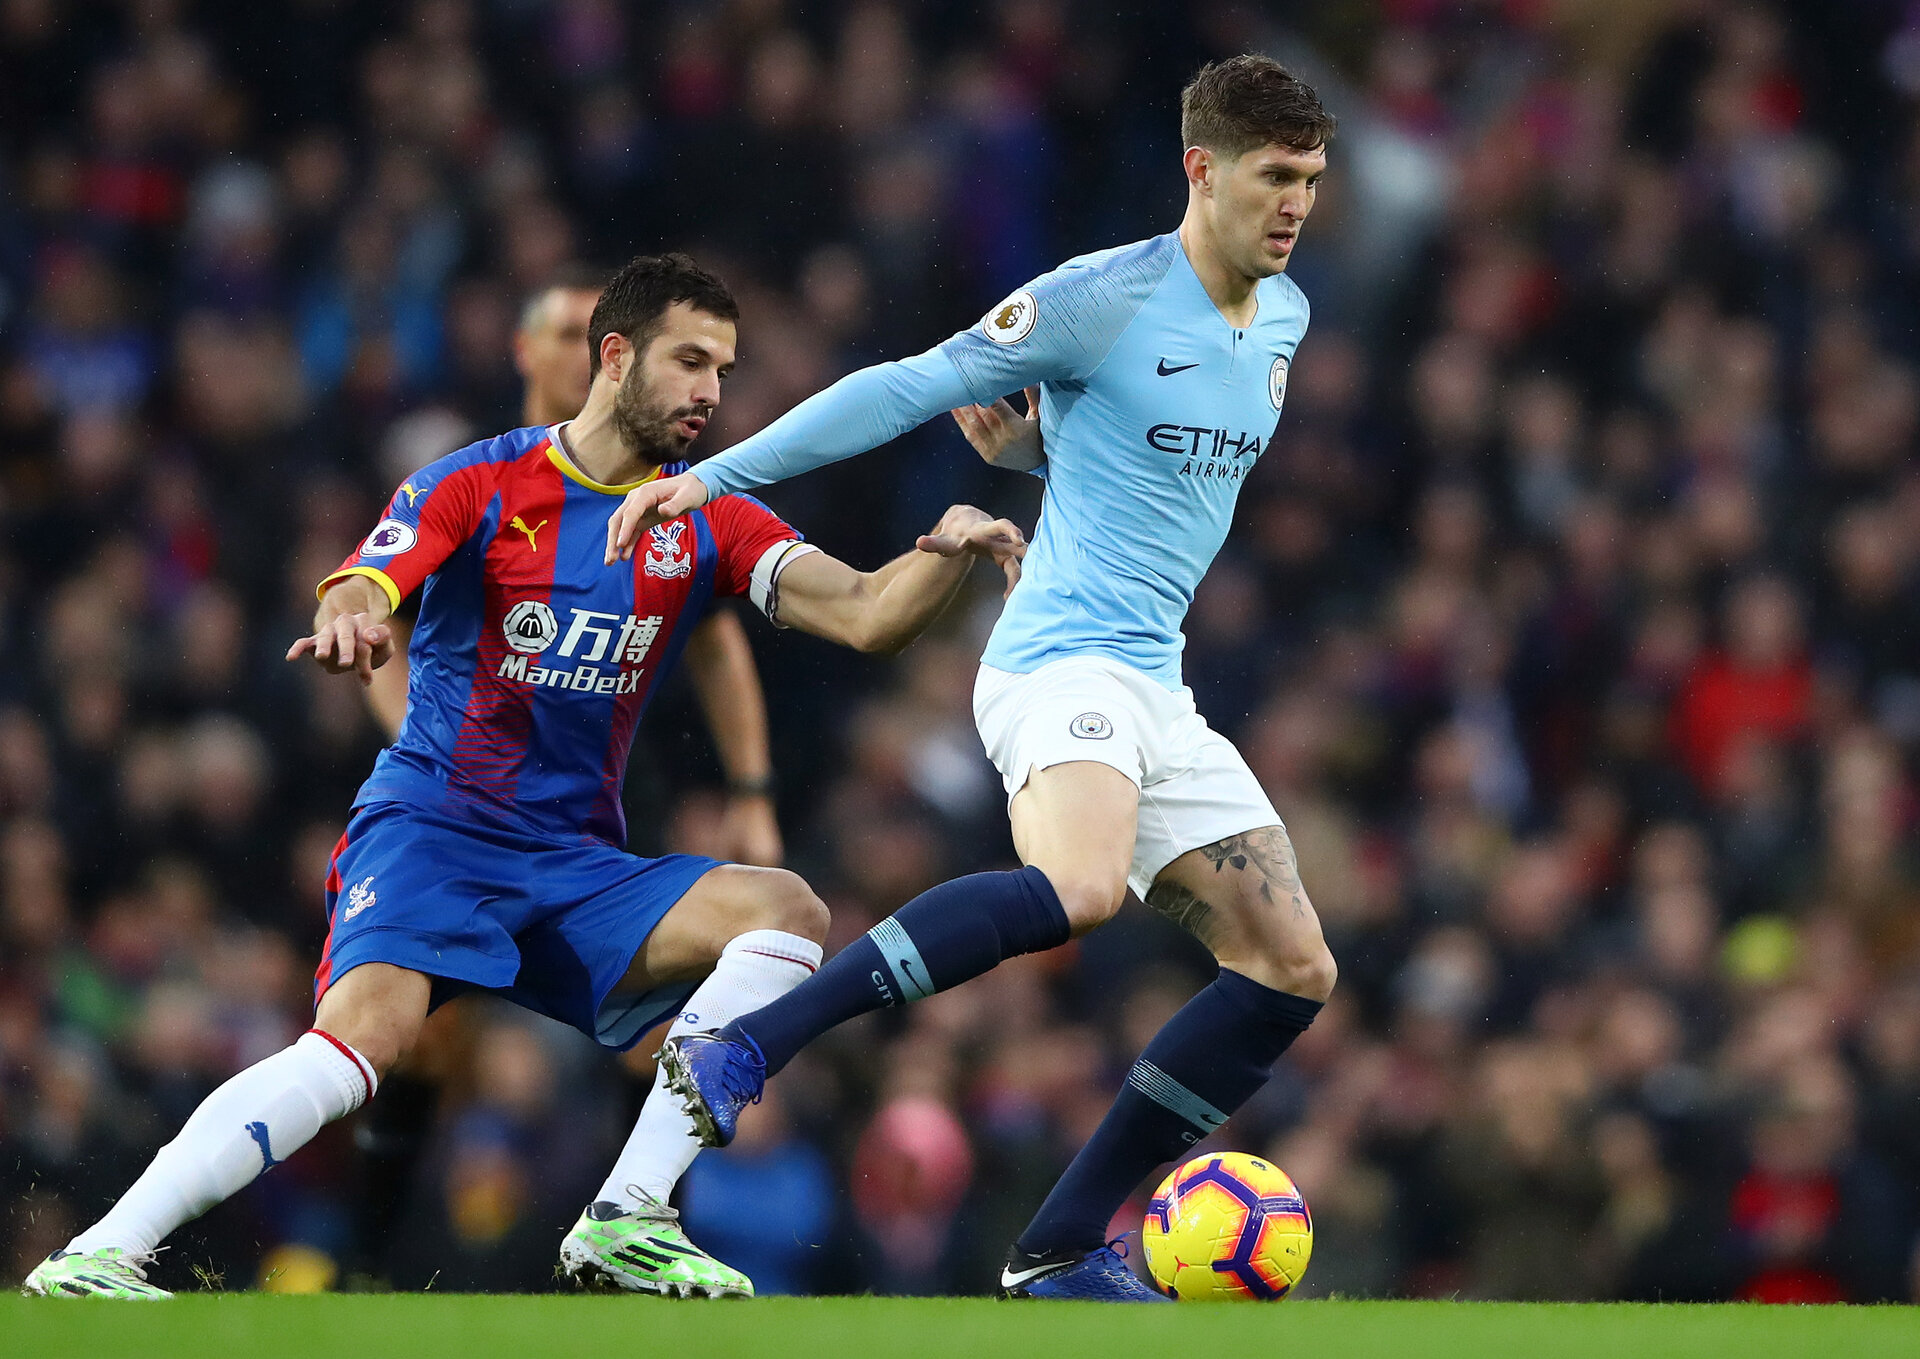 MANCHESTER, ENGLAND - DECEMBER 22: John Stones of Manchester City is challenged by Luka Milivojevic of Crystal Palace during the Premier League match between Manchester City and Crystal Palace at Etihad Stadium on December 22, 2018 in Manchester, United Kingdom.  (Photo by Clive Brunskill/Getty Images)